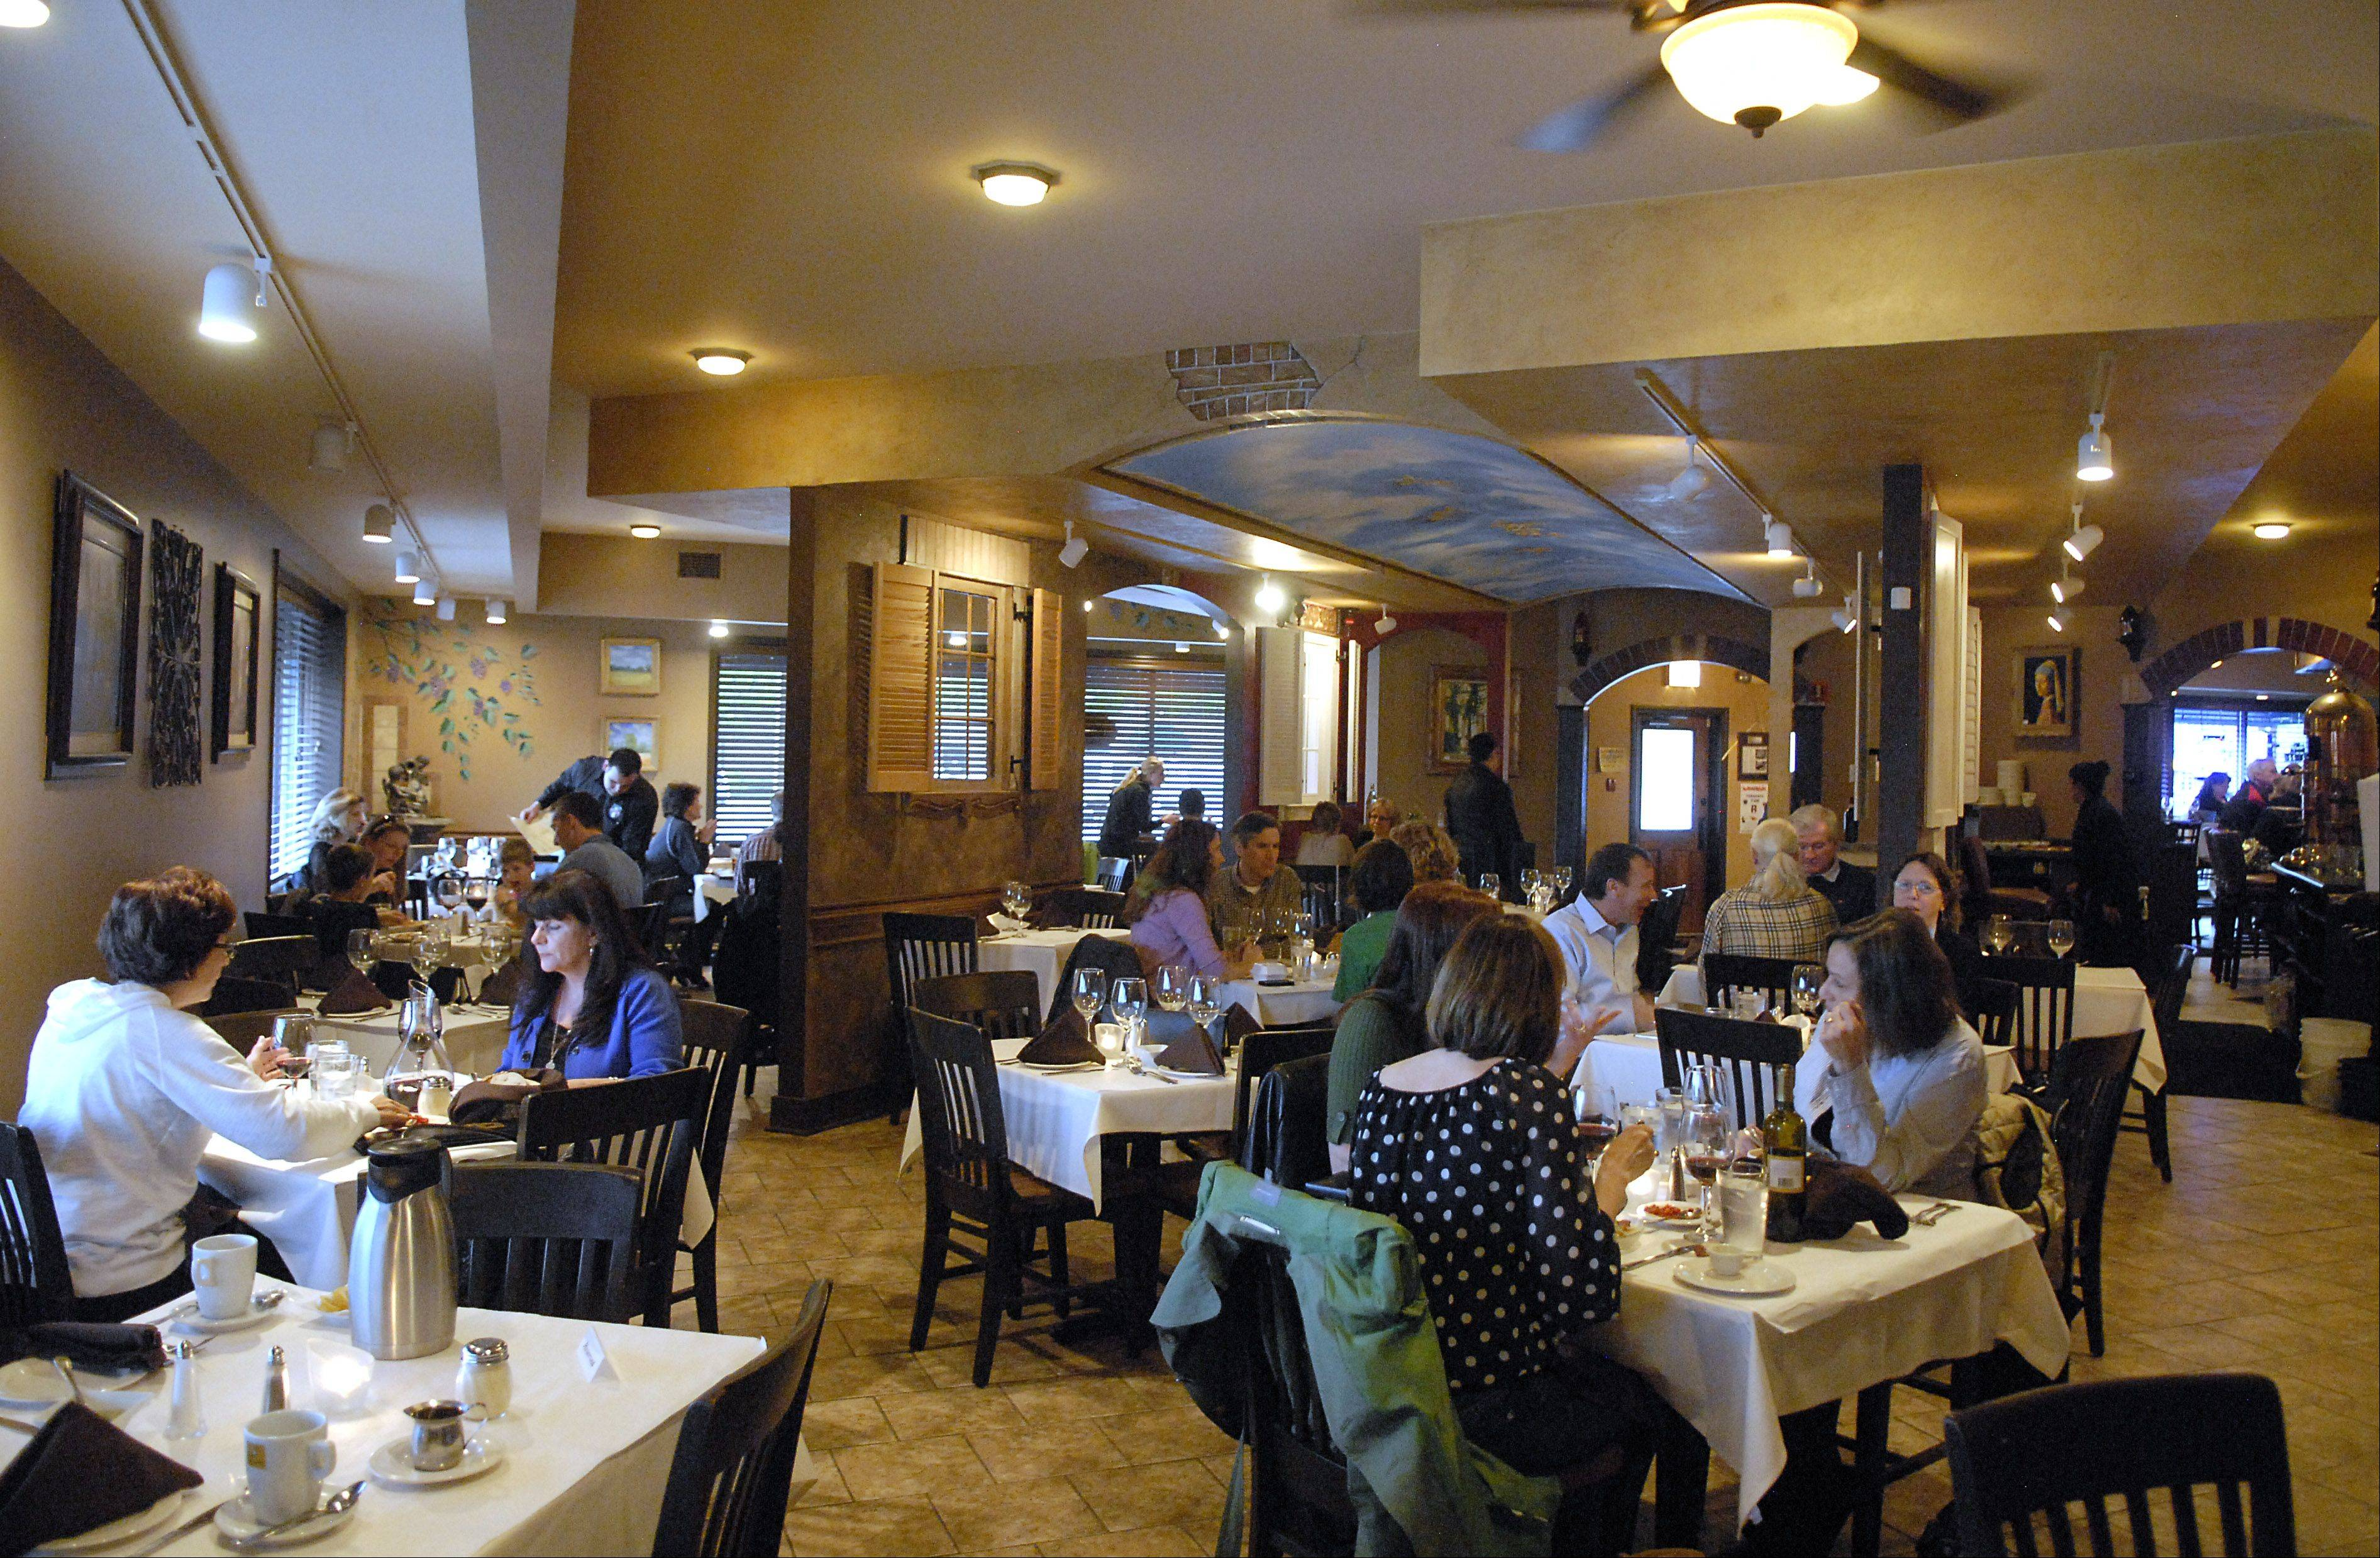 One area of the large dining room in Aliano's Ristorante at 90 N. Island in Batavia.